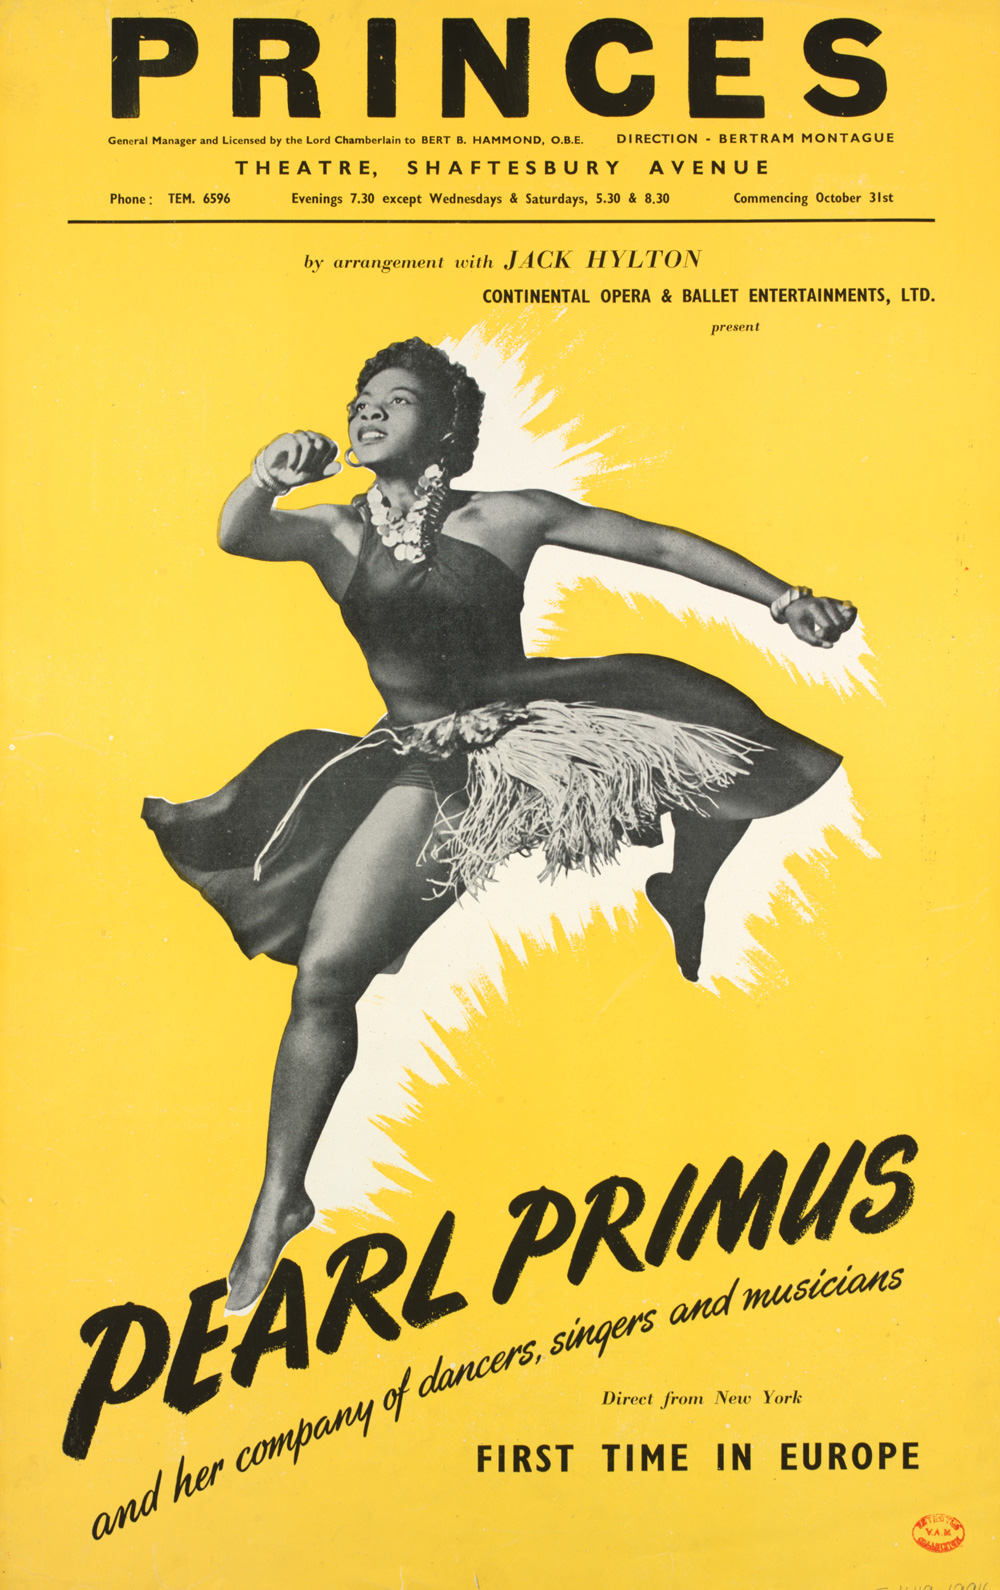 Pearl primus company poster shaftesbury avenue theatre london 1951 museum no s 4119 1994